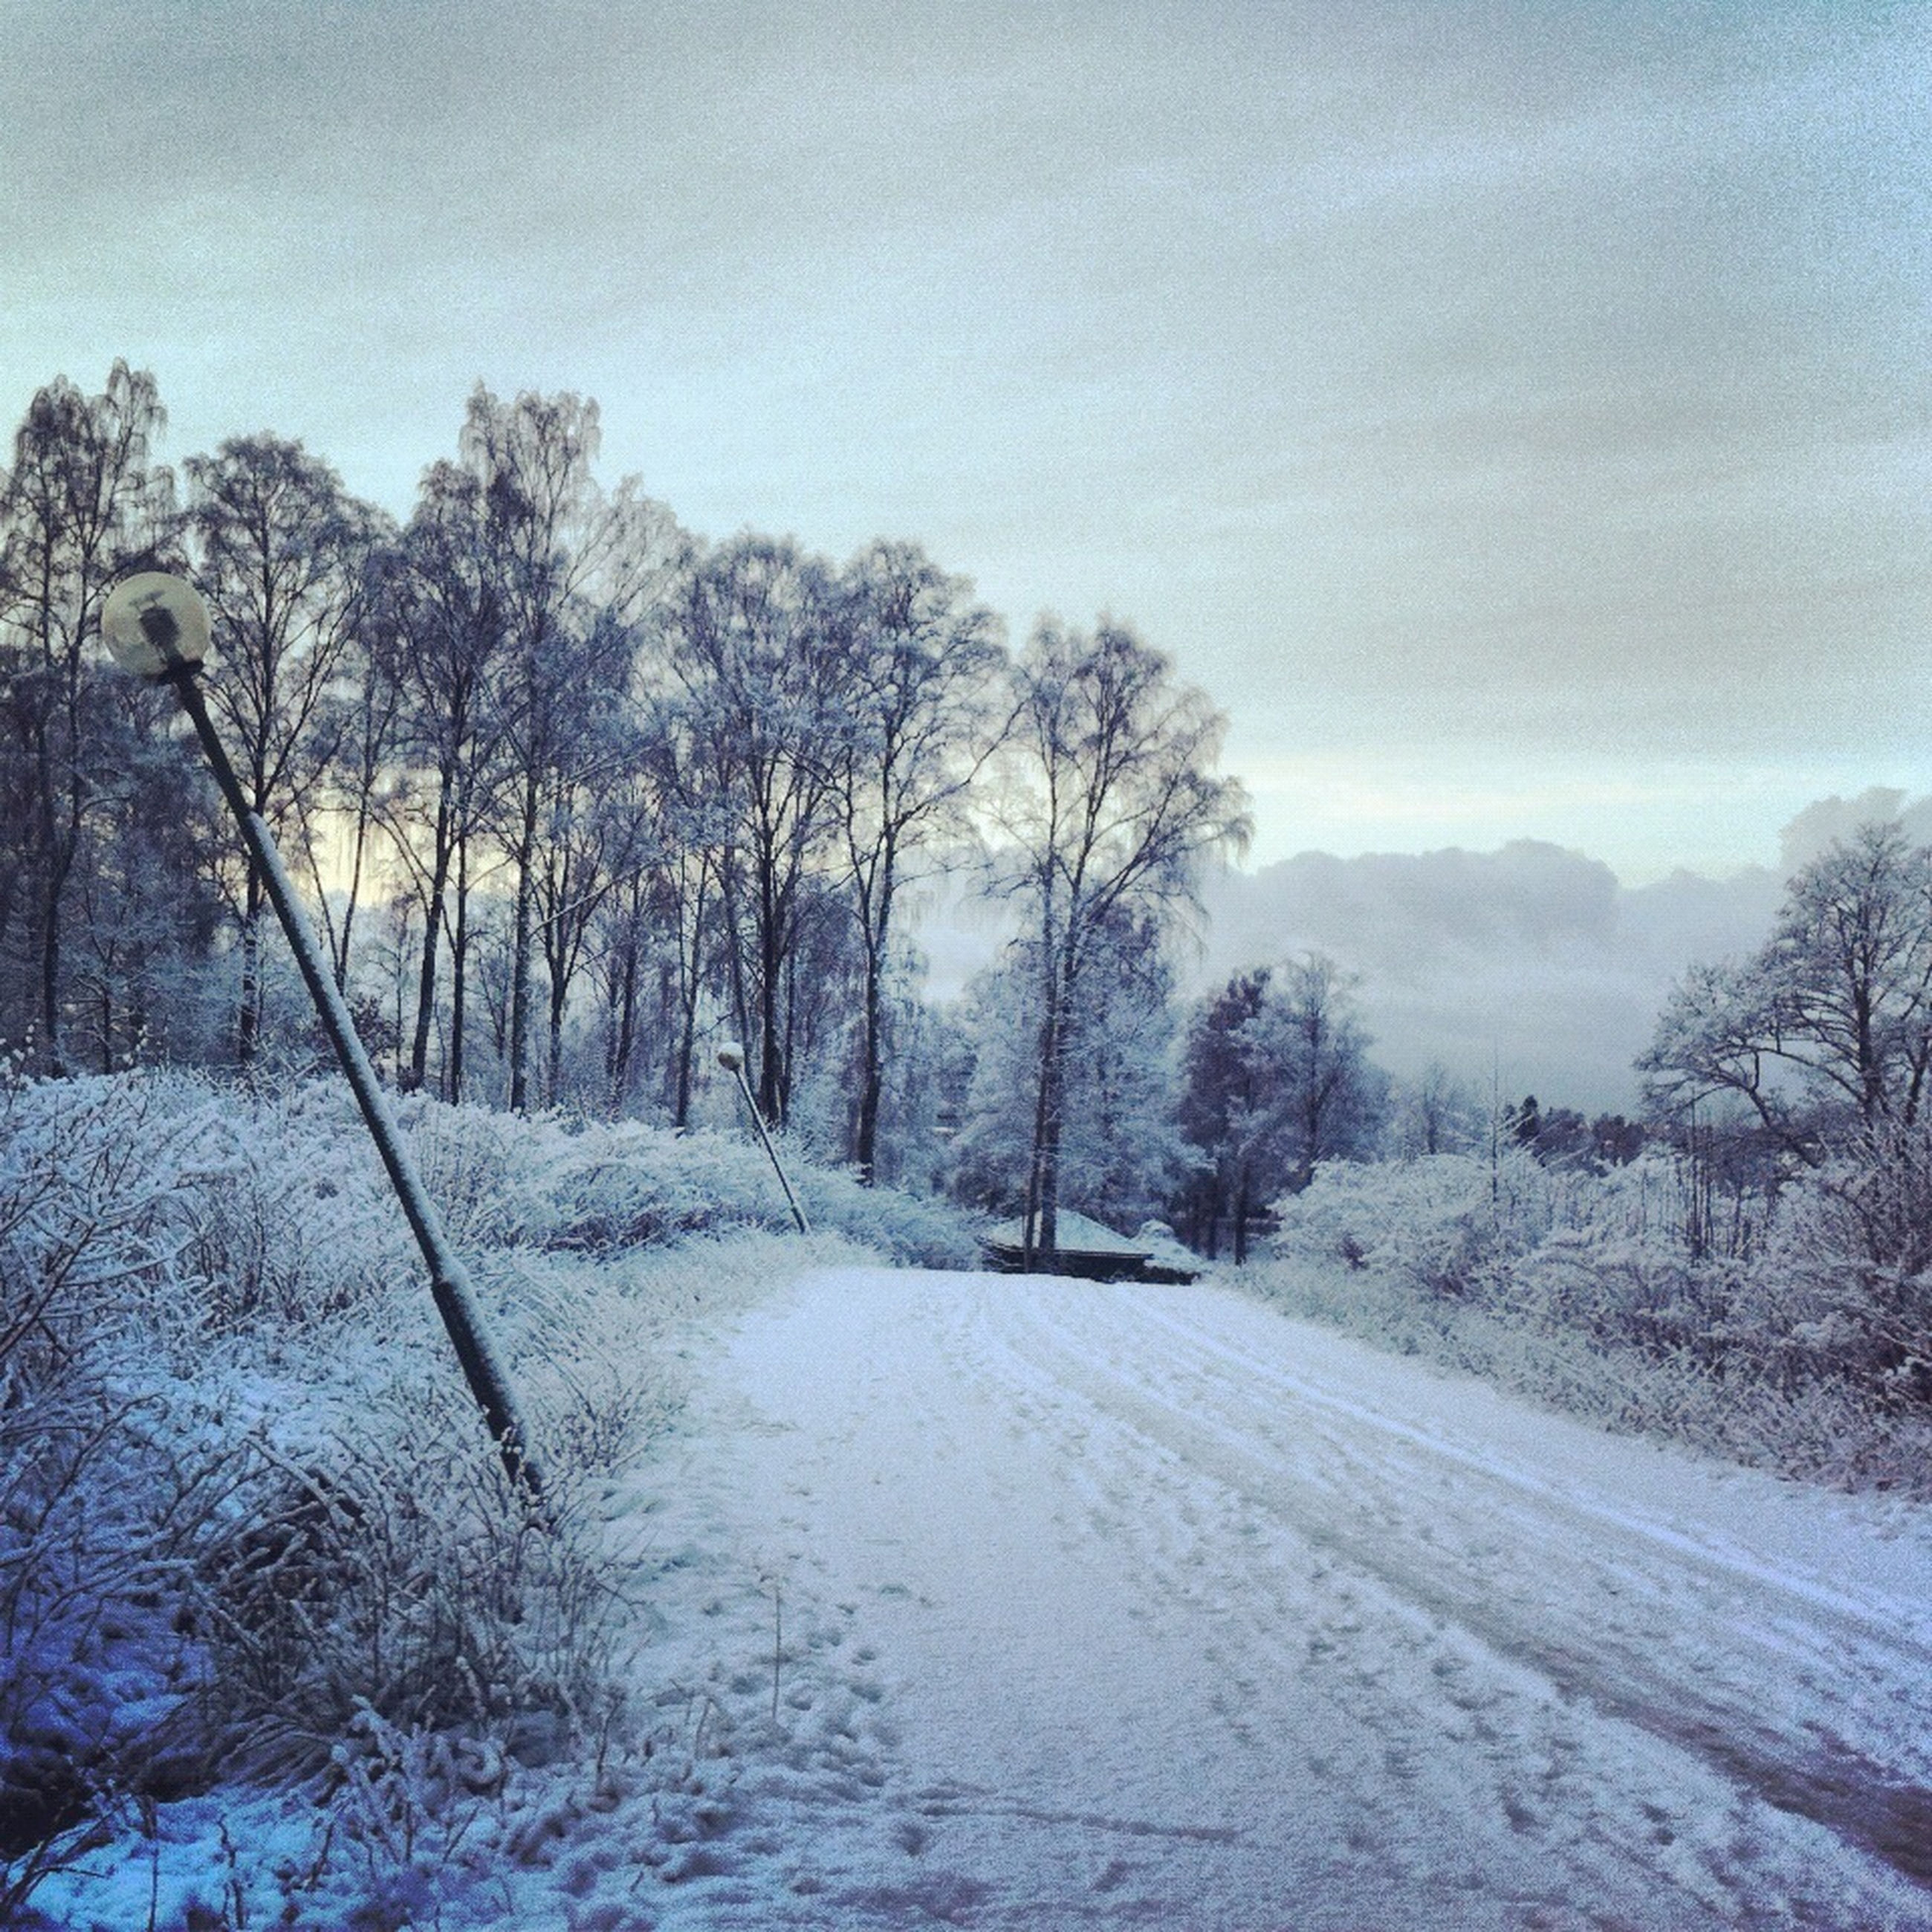 snow, winter, cold temperature, tree, tranquil scene, sky, tranquility, season, weather, the way forward, scenics, landscape, nature, beauty in nature, bare tree, covering, road, non-urban scene, mountain, cloud - sky